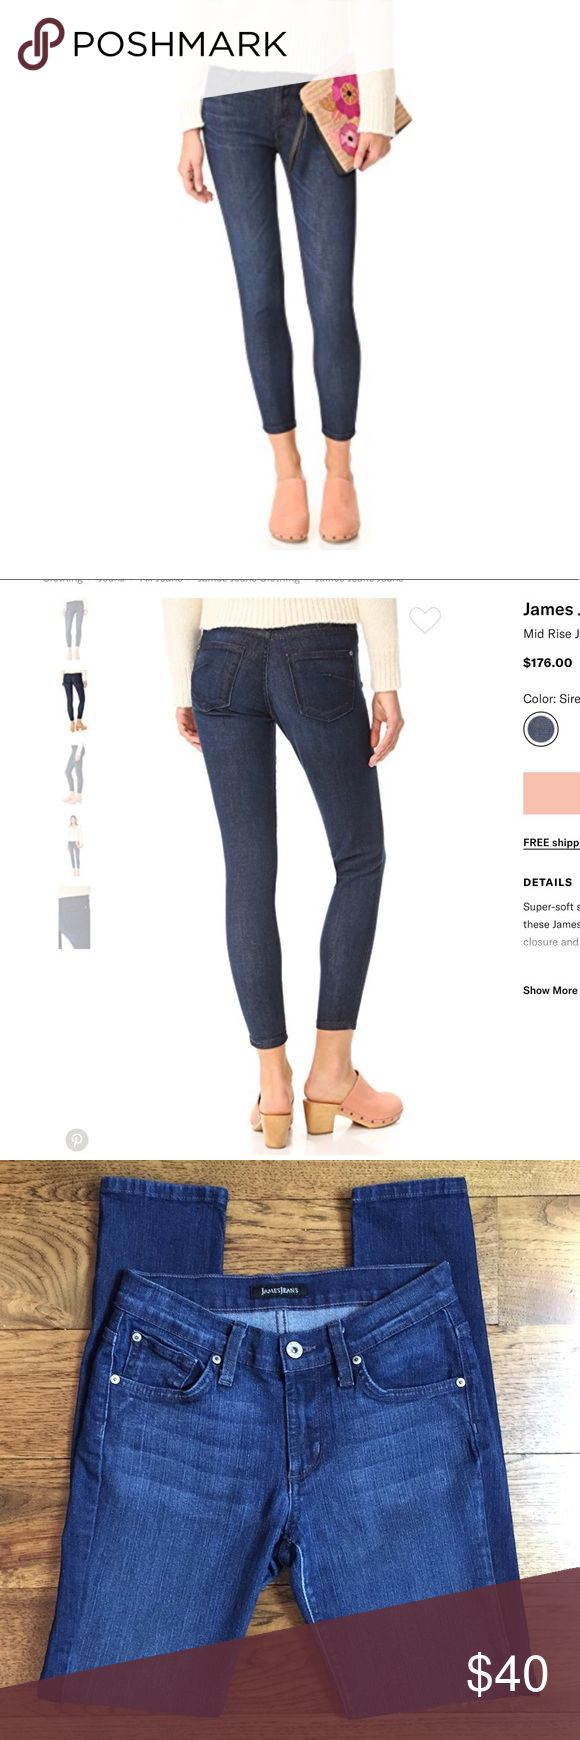 """James Twiggy Ankle Mid Rise Jeans in Siren Excellent used condition!  Super-soft stretch denim lends a comfortable, curve-hugging fit to these James Jeans cropped skinny jeans. 5-pocket styling. Button closure and zip fly.  Measures approximately 13.5"""" across waist lying flat and unstretched.  28"""" inseam, 8"""" rise. James Jeans Jeans Skinny"""